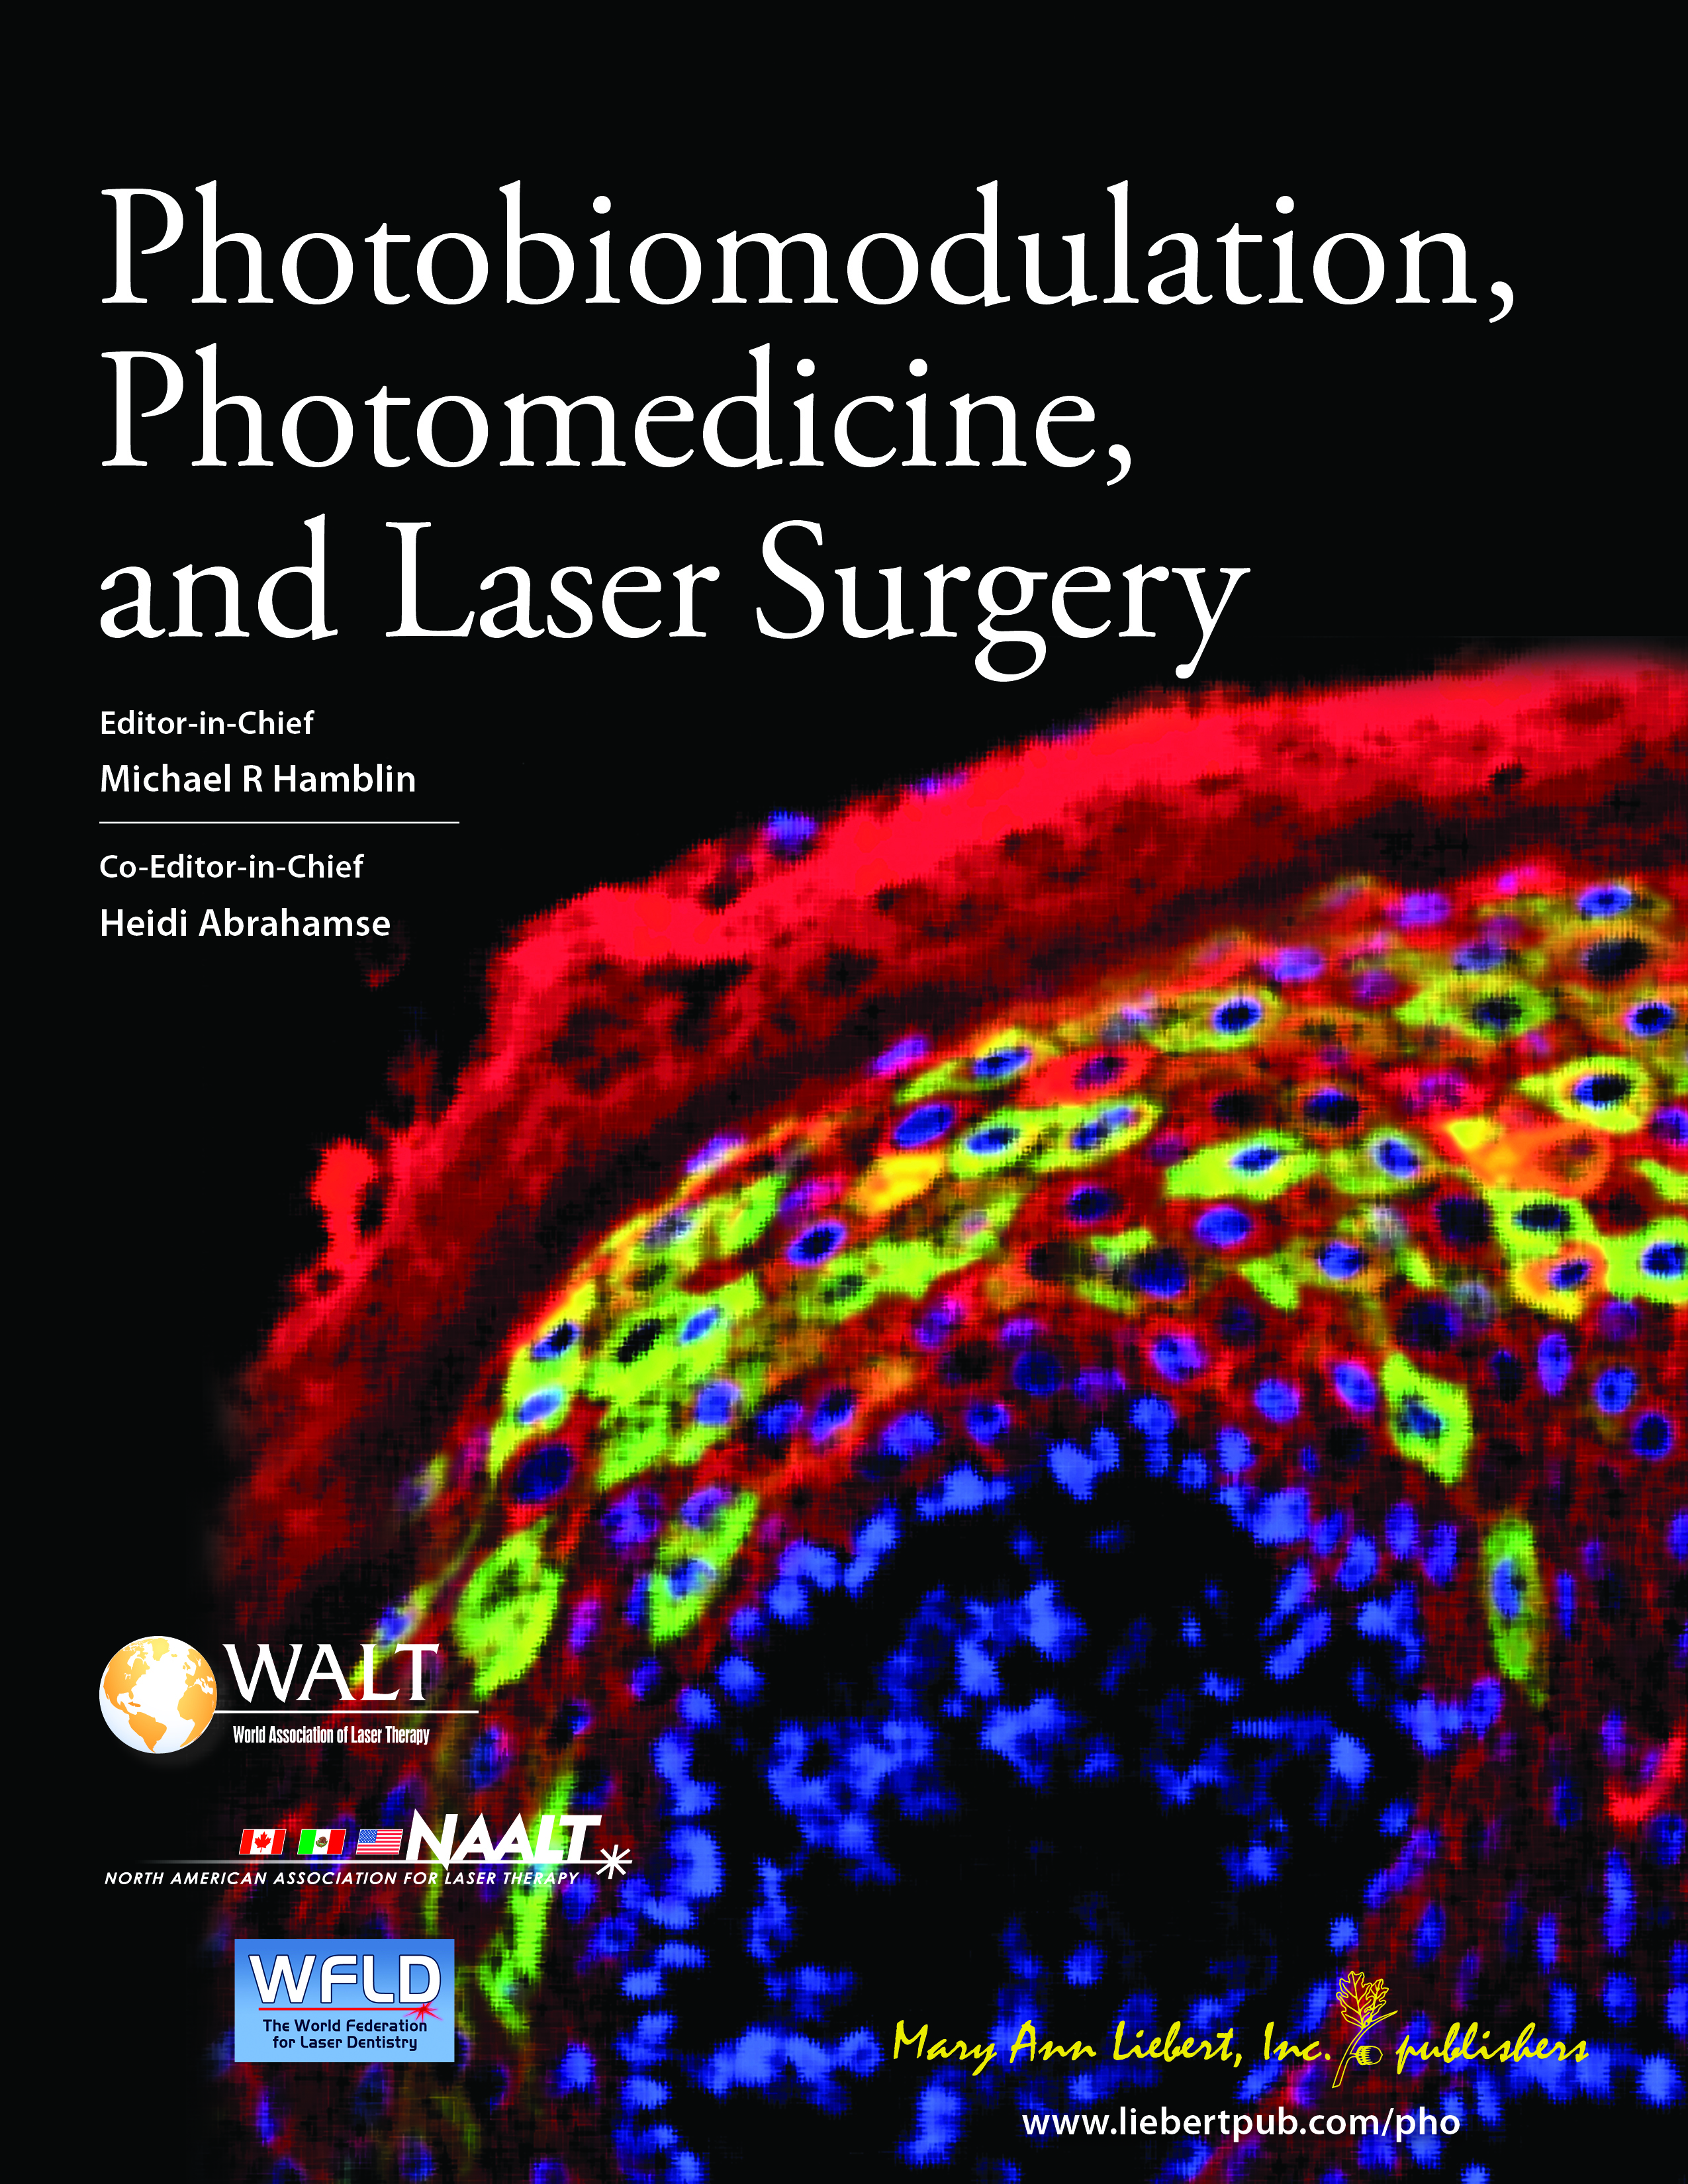 Photobiomodulation, Photomedicine, and Laser Surgery